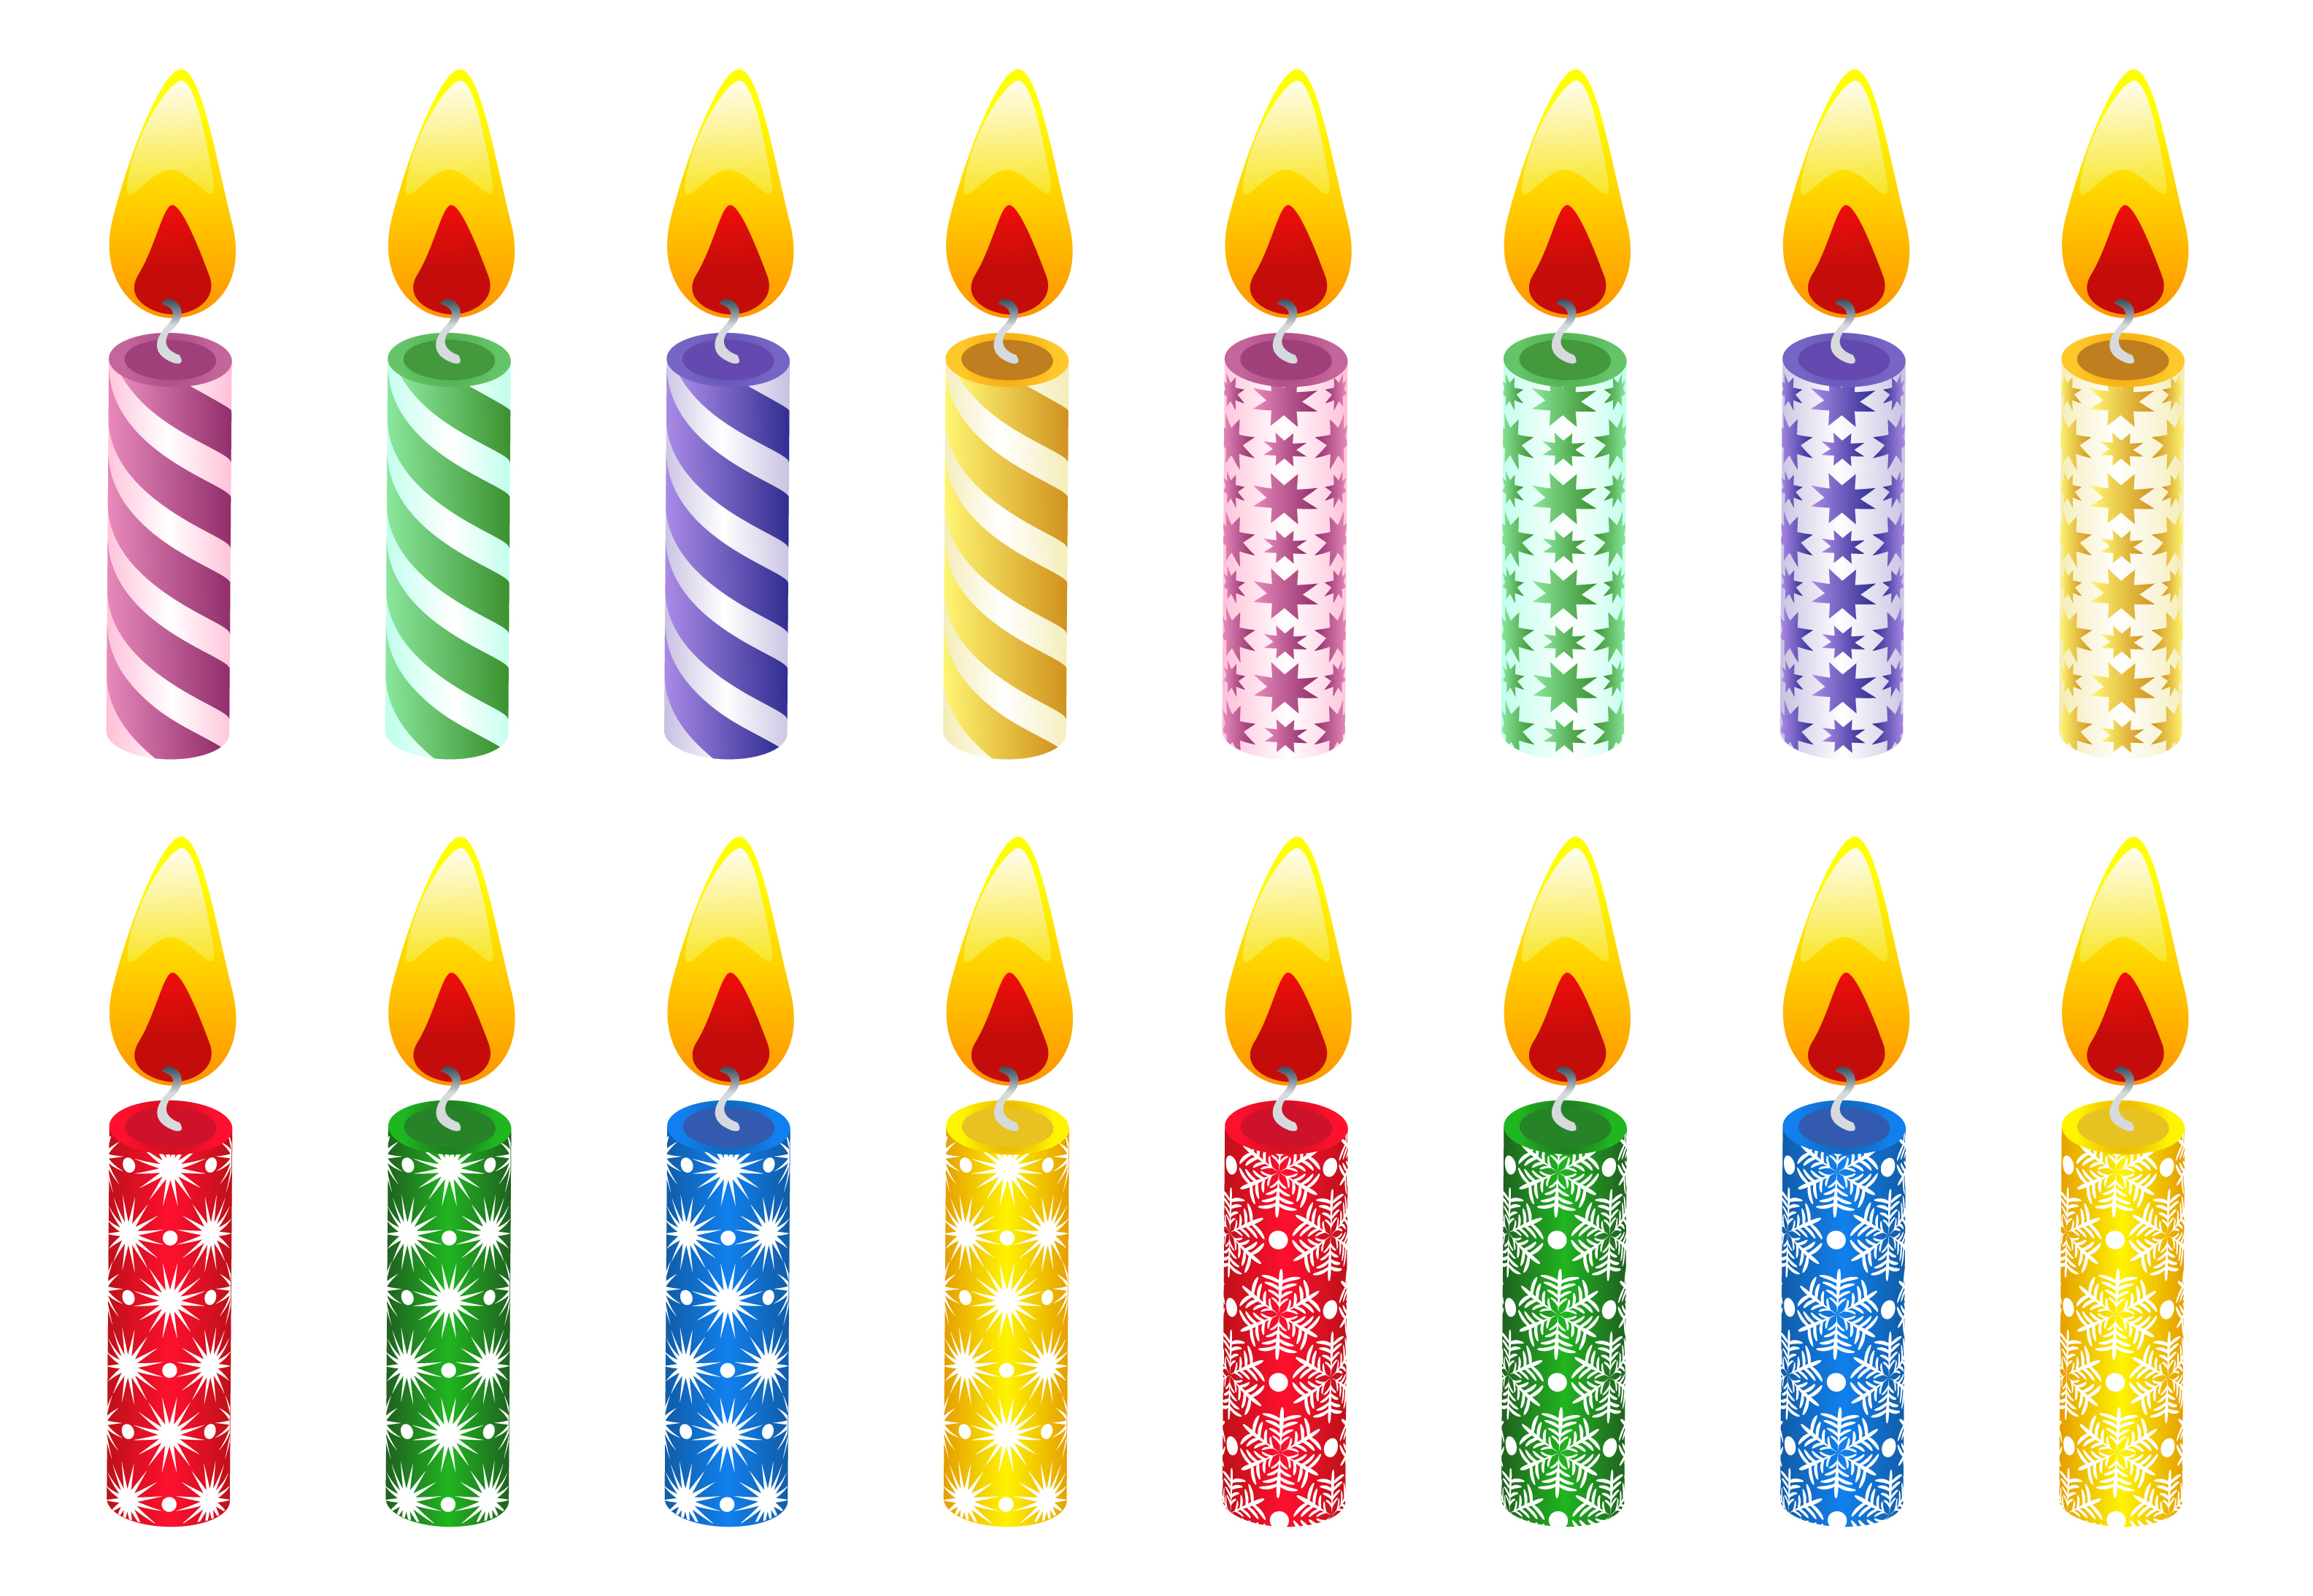 Free Candle Cliparts, Download Free Clip Art, Free Clip Art.